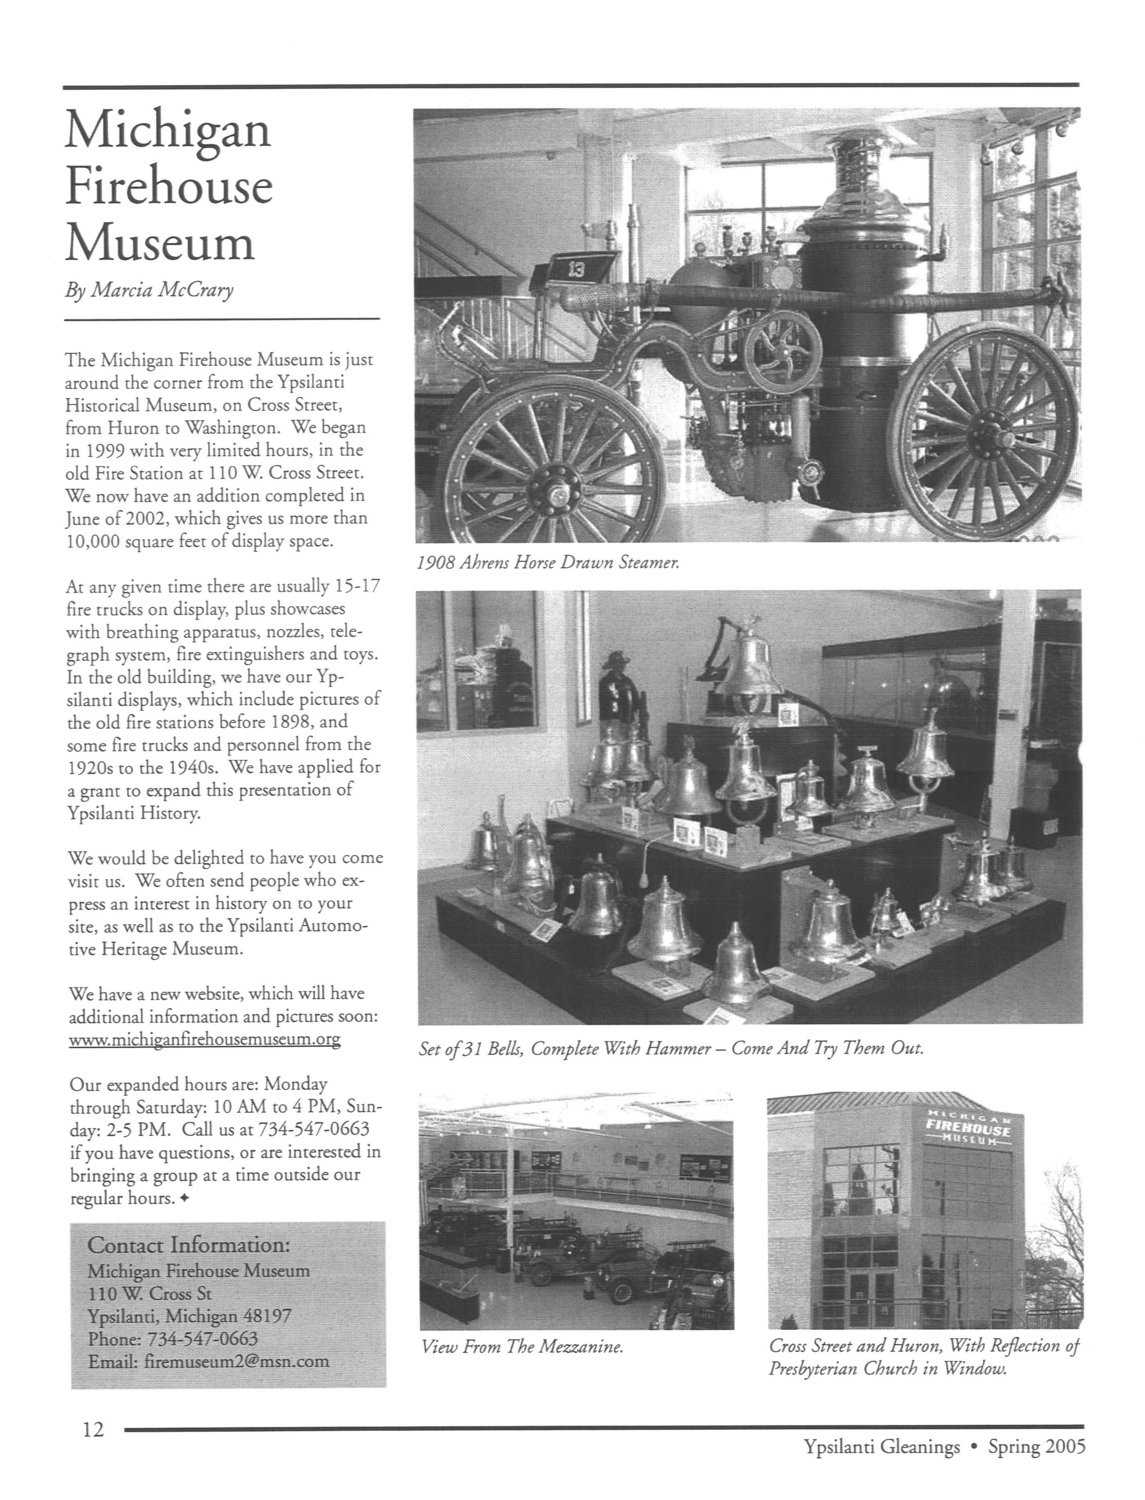 Michigan Firehouse Museum image